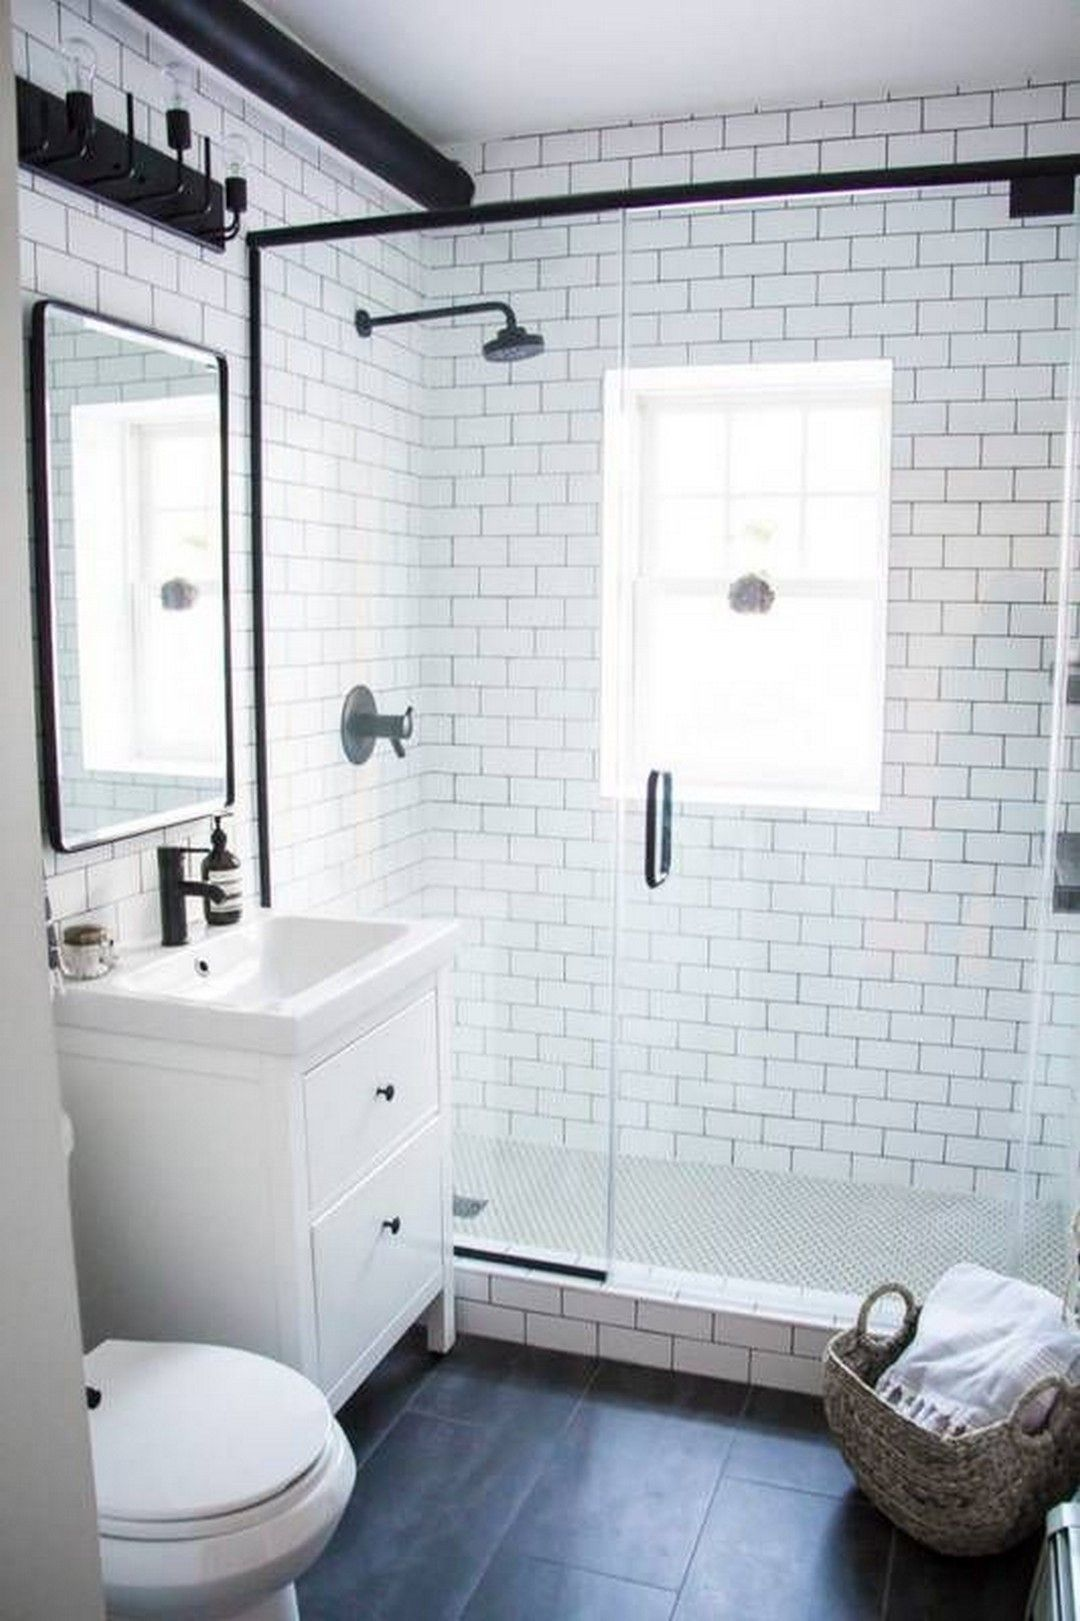 10 Change Your Old Style Bathroom With This Small Master Bathroom Ideas With Images Bathroom Remodel Master Small Bathroom Makeover Small Master Bathroom